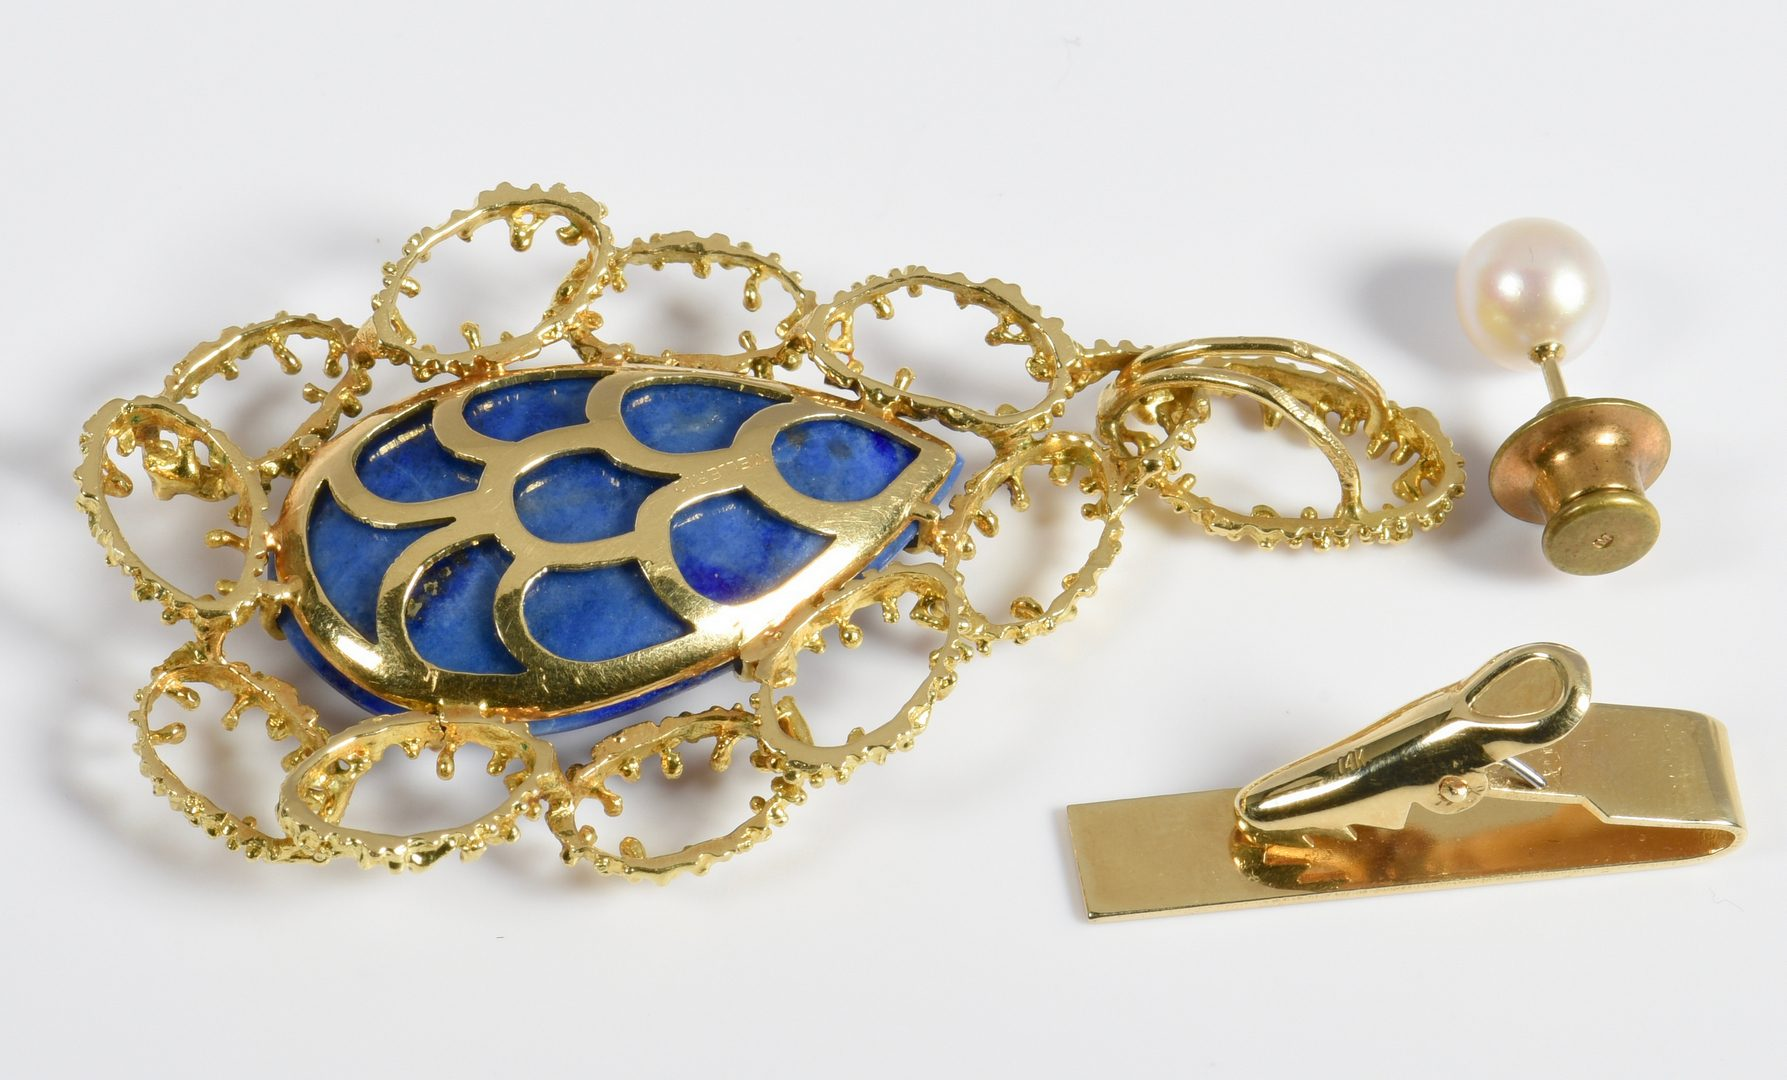 Lot 132: Group of Pearl and Lapis Jewelry